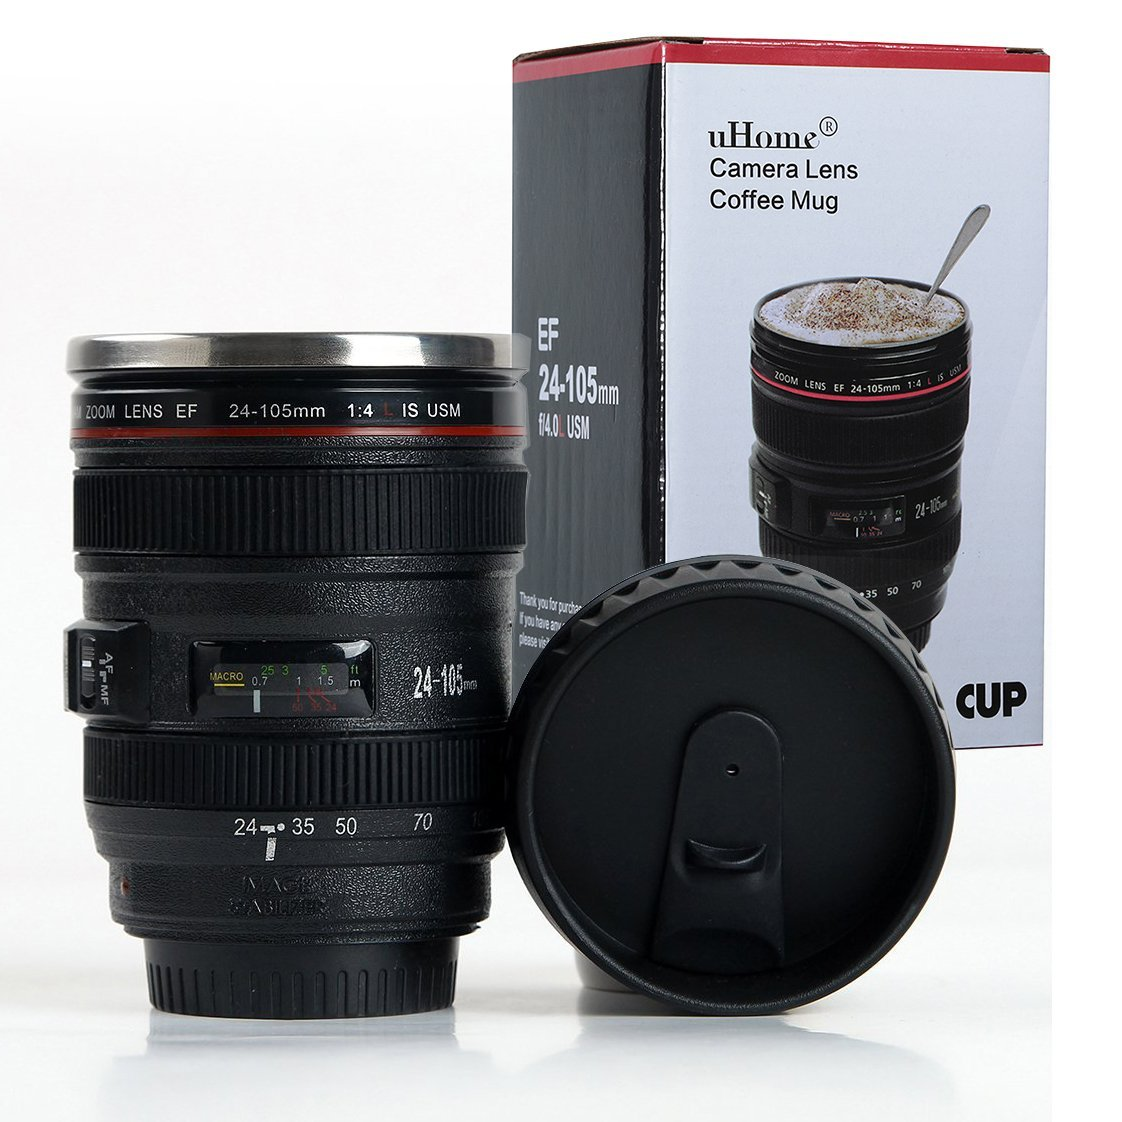 Canon DSLR Camera 24-105mm f/4 Lens Cup...such a fun gift item! | https://www.roseclearfield.com